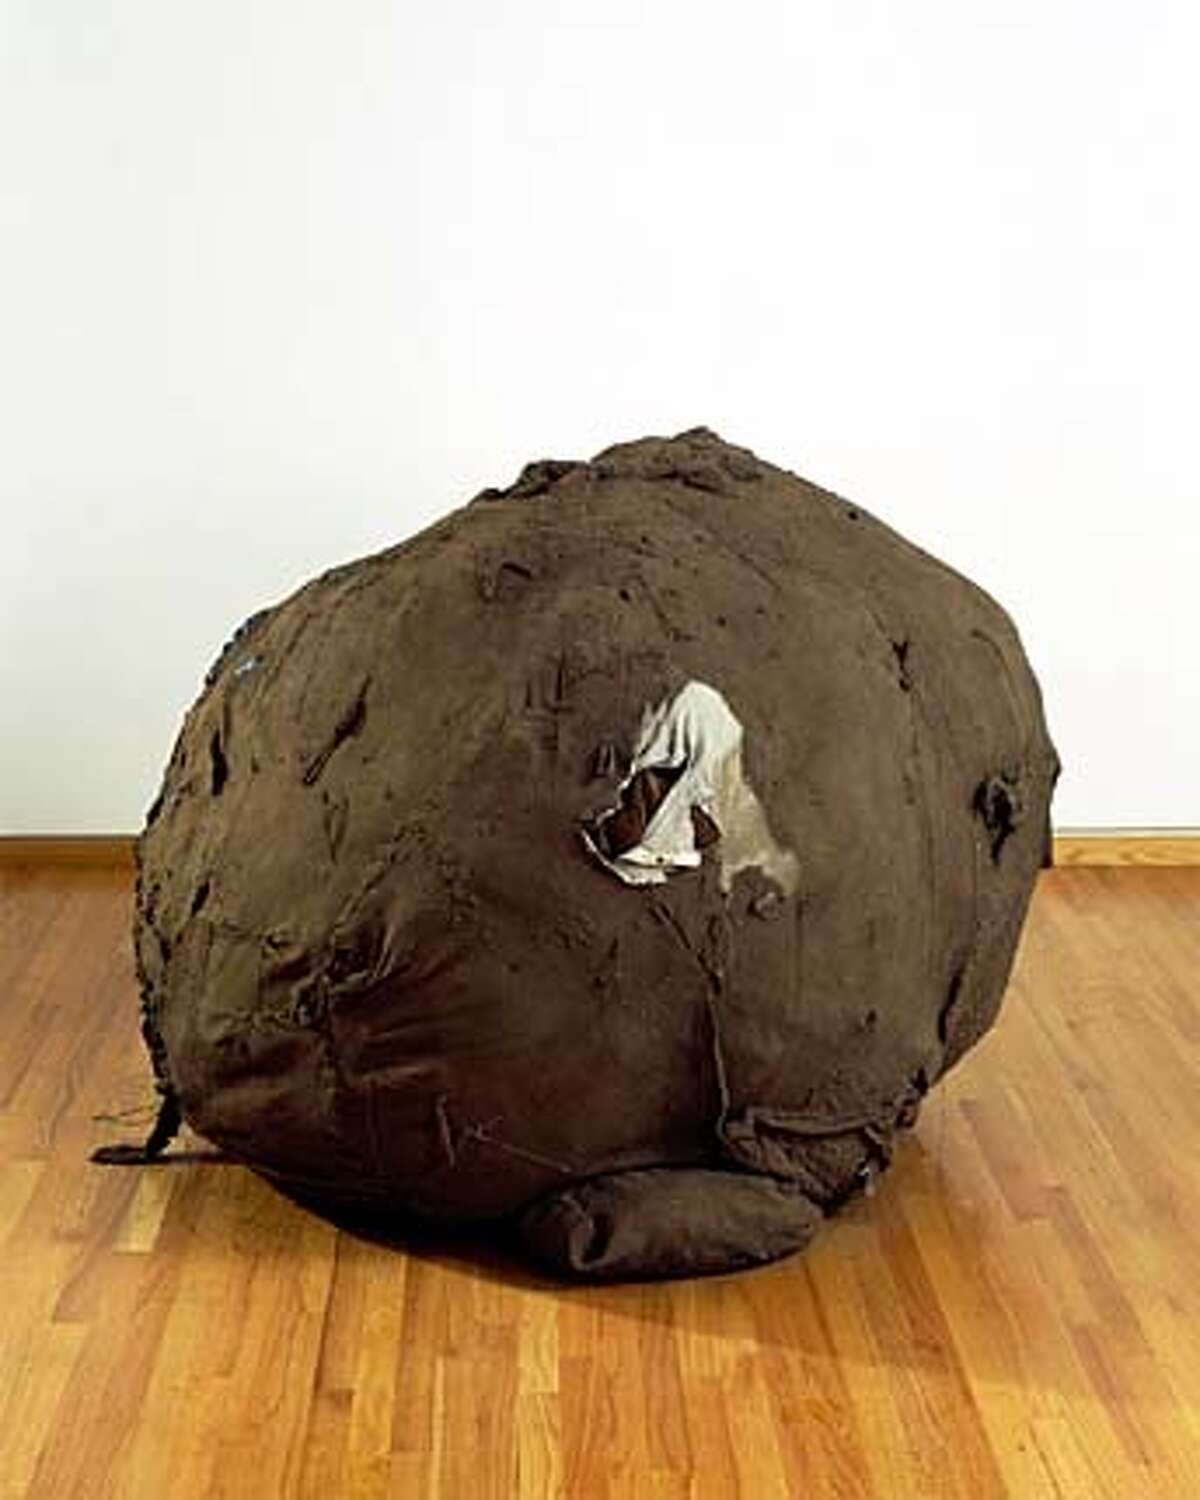 THIS IS A HANDOUT IMAGE. PLEASE VERIFY RIGHTS. Ball_us.jpg Kathryn Spence Untitled, 2003 mud, clothes, curtains, blankets, towels, string, lint 47 x 61 x 64 inches HANDOUT PHOTO/VERIFY RIGHTS AND USEAGE